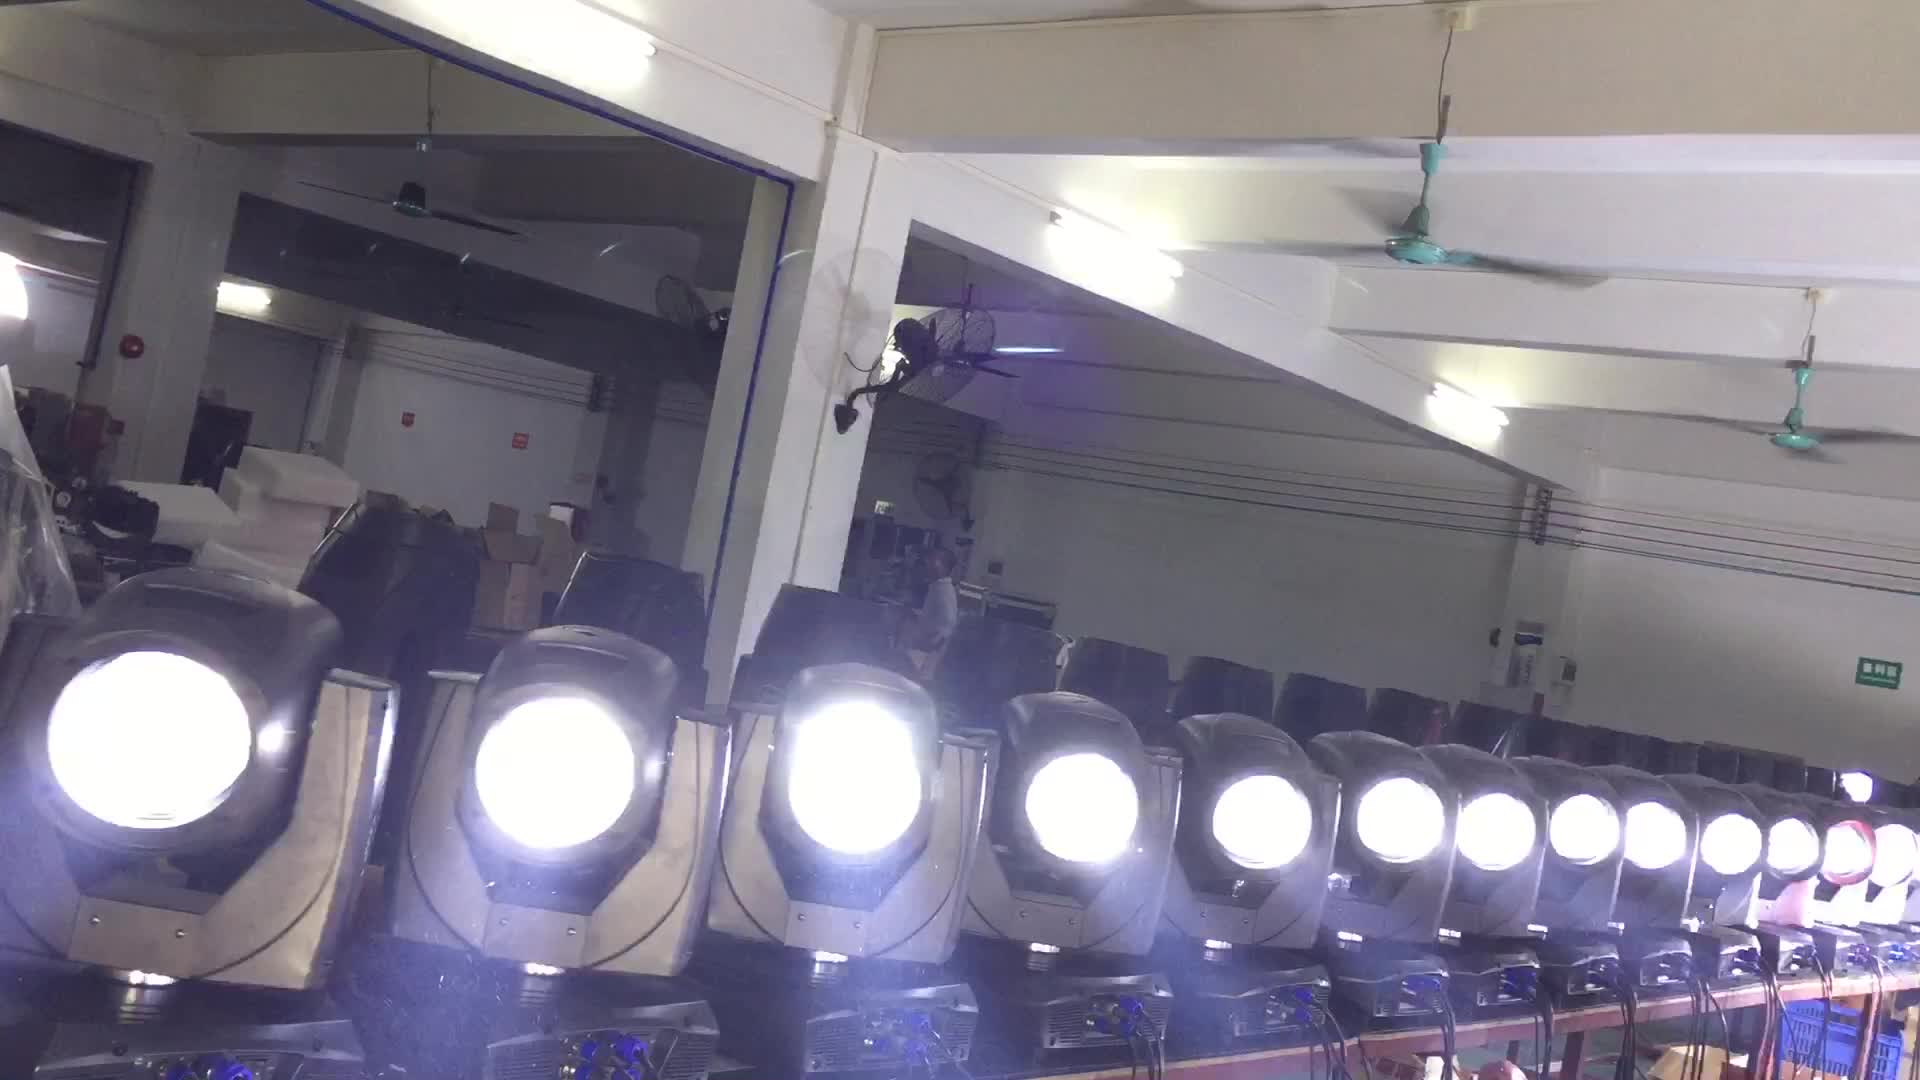 Professional Stage Lighting Super Sharpy Beam 350w 330w 17r 15r Moving Head Light